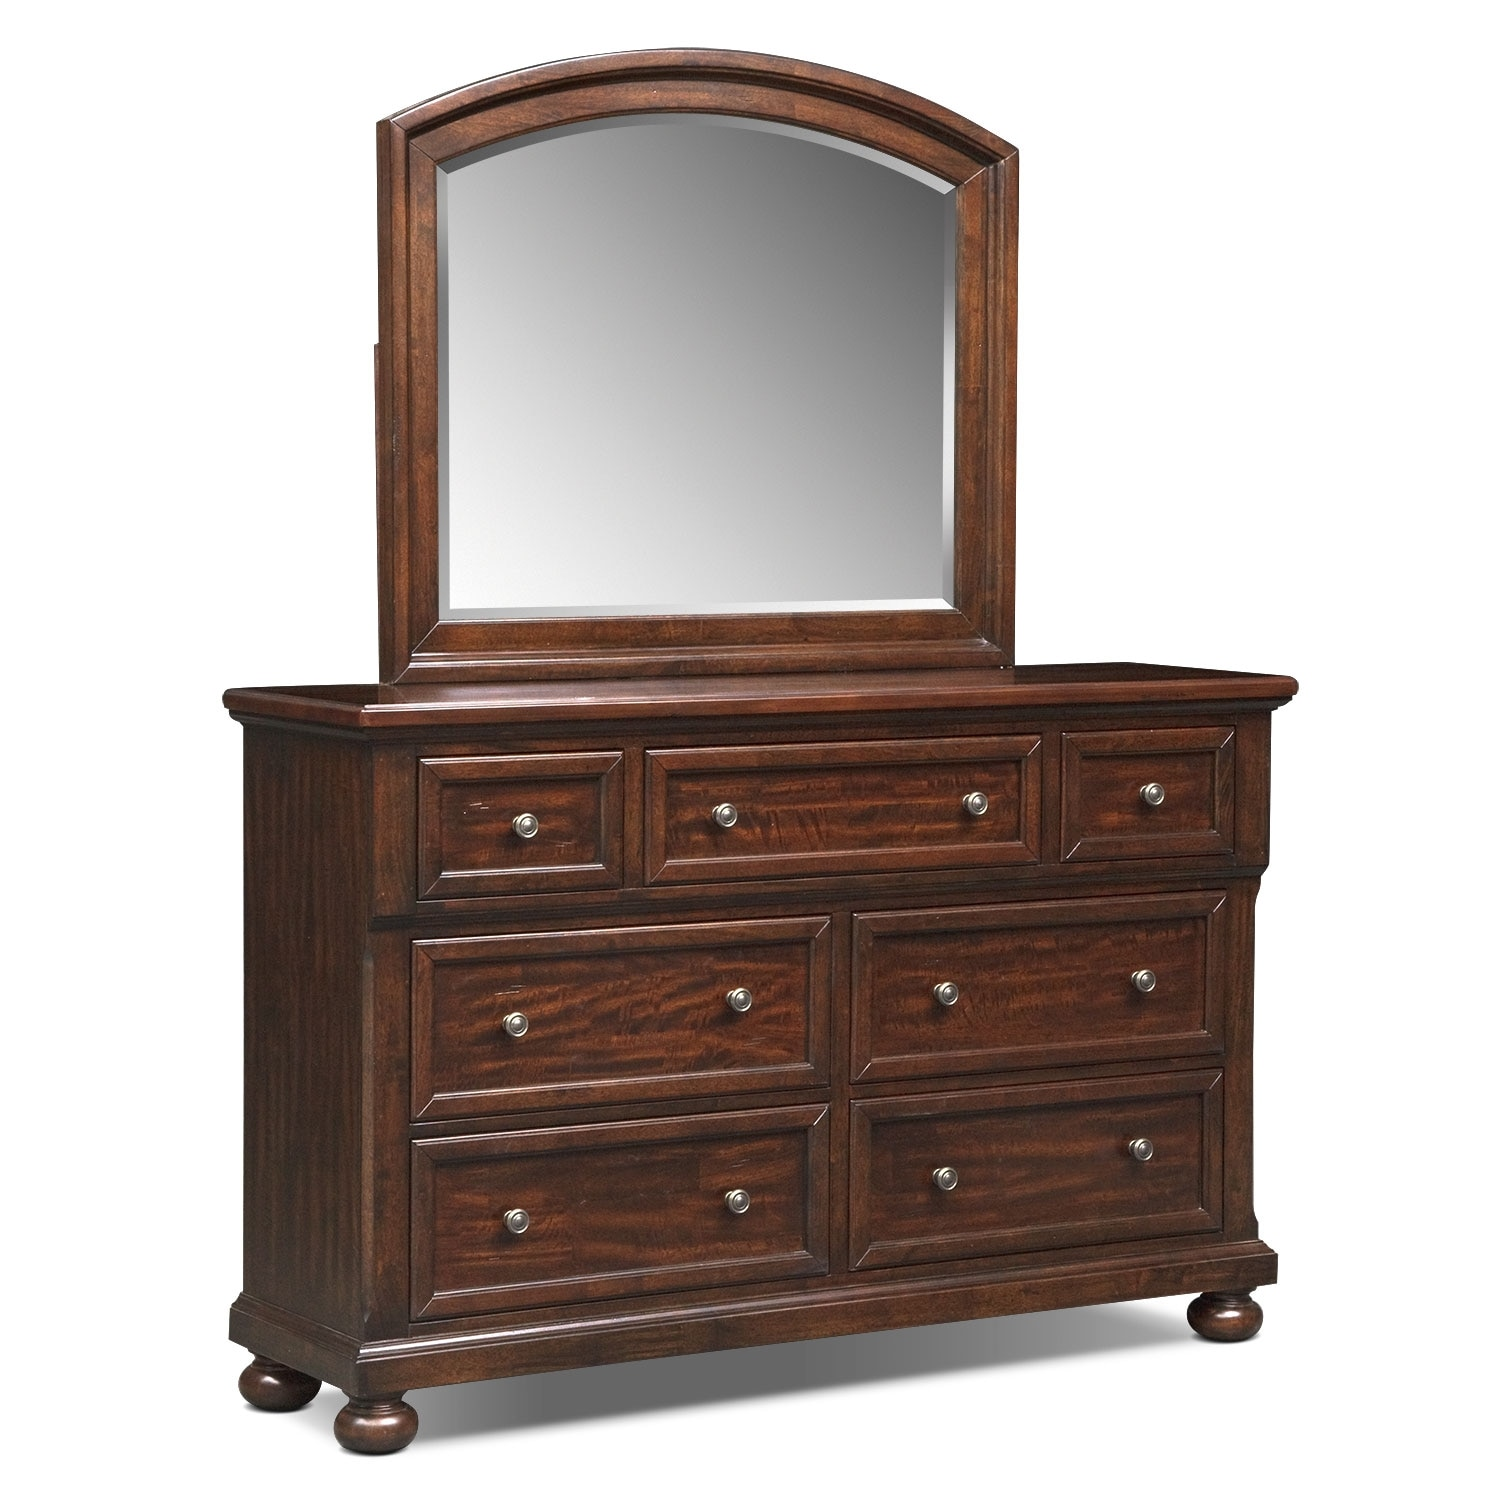 Bedroom Furniture - Hanover Dresser and Mirror - Cherry